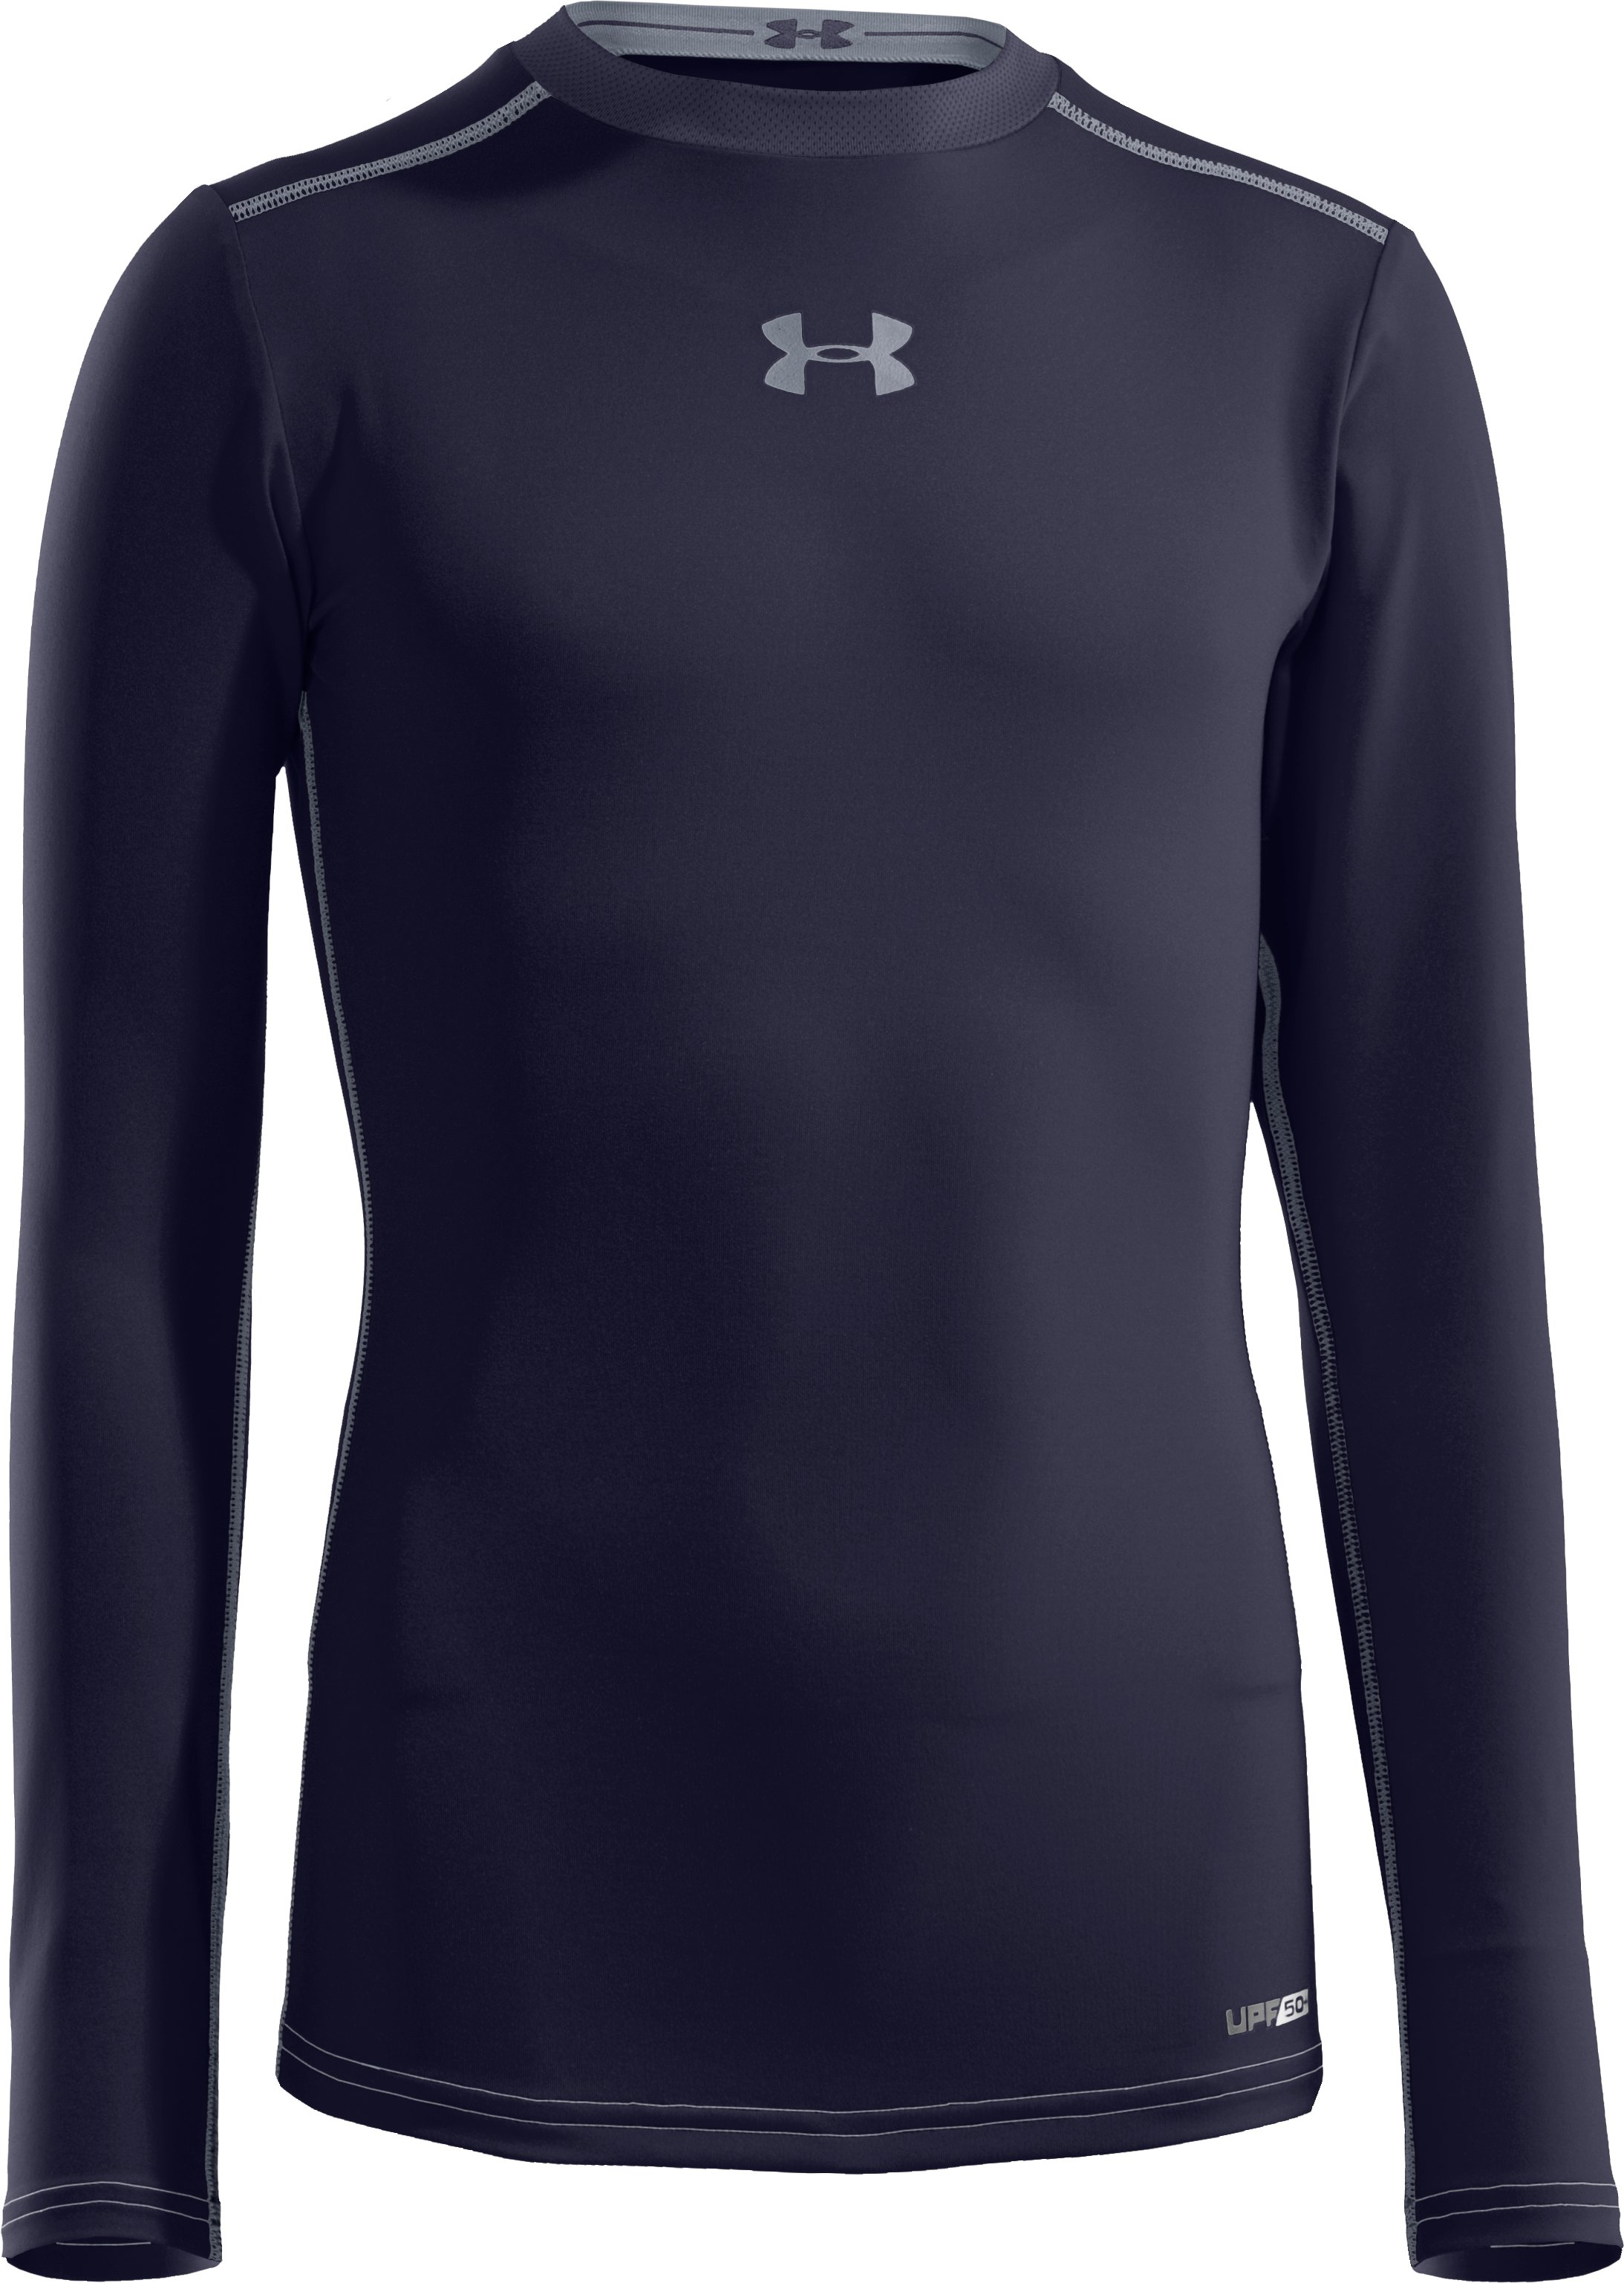 Boys' HeatGear® Sonic Fitted Long Sleeve, Midnight Navy